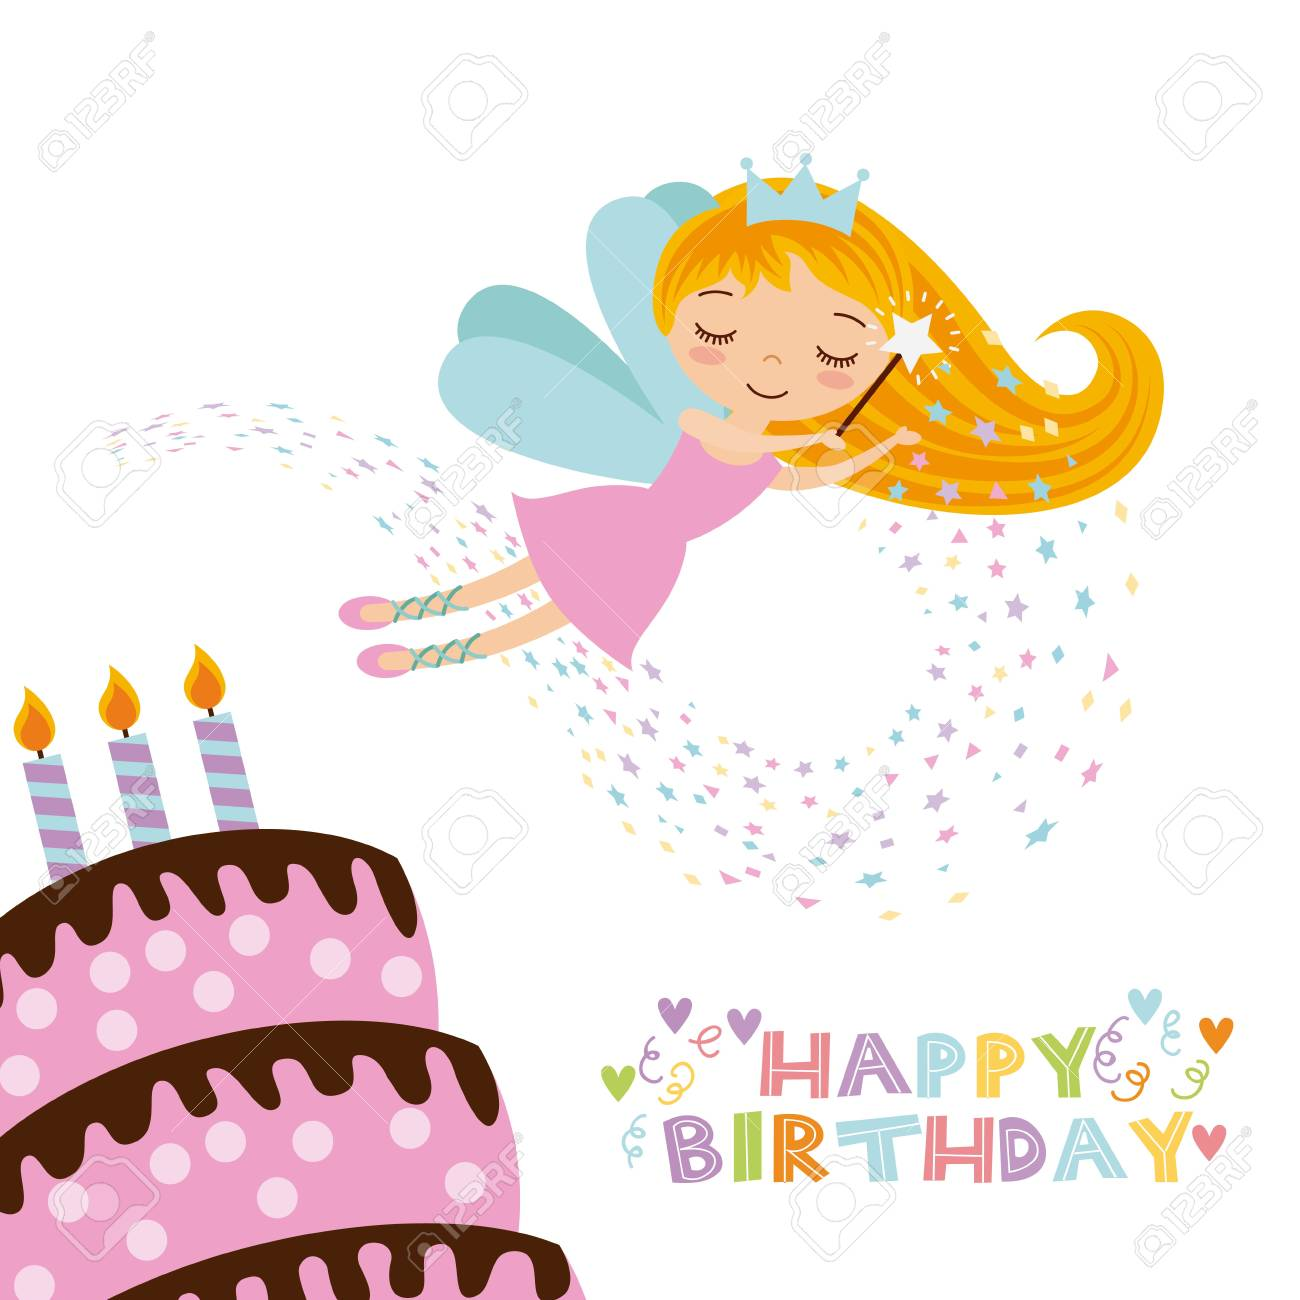 Happy Birthday Card With Cute Fairy Girl And Cake With Candles